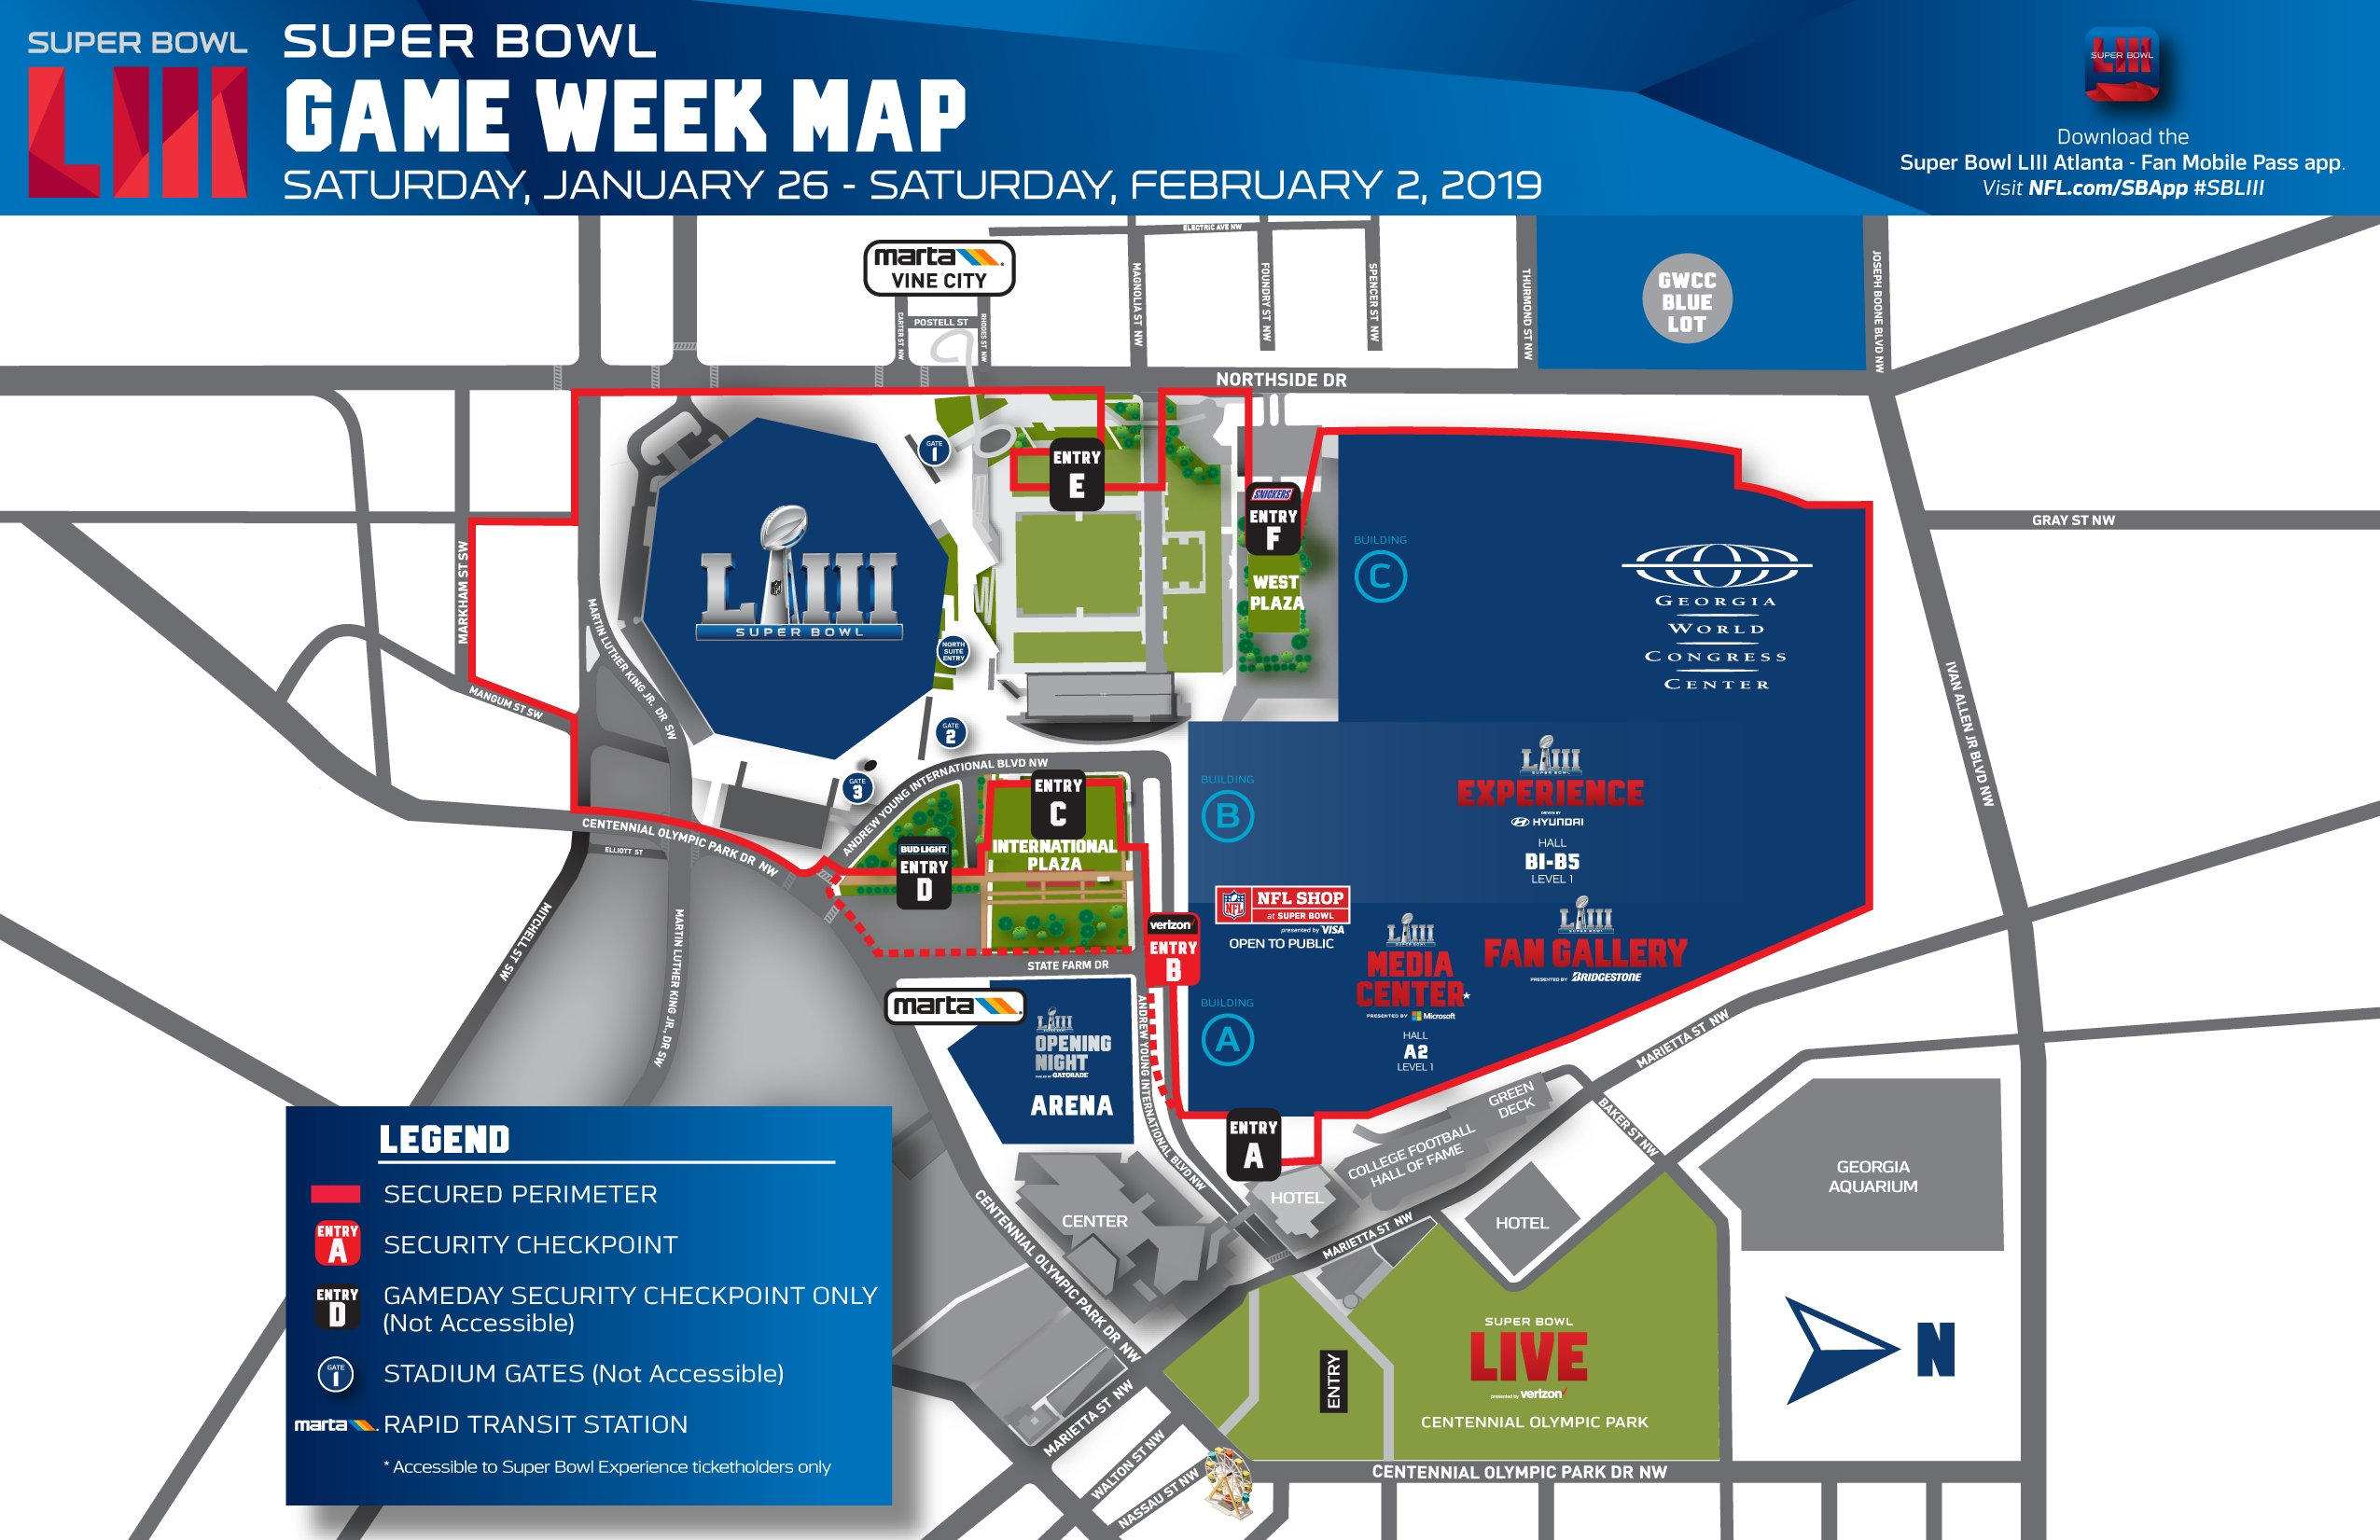 Super Bowl Hub - Mercedes Benz Stadium pertaining to Super Bowl Liii Fan Map